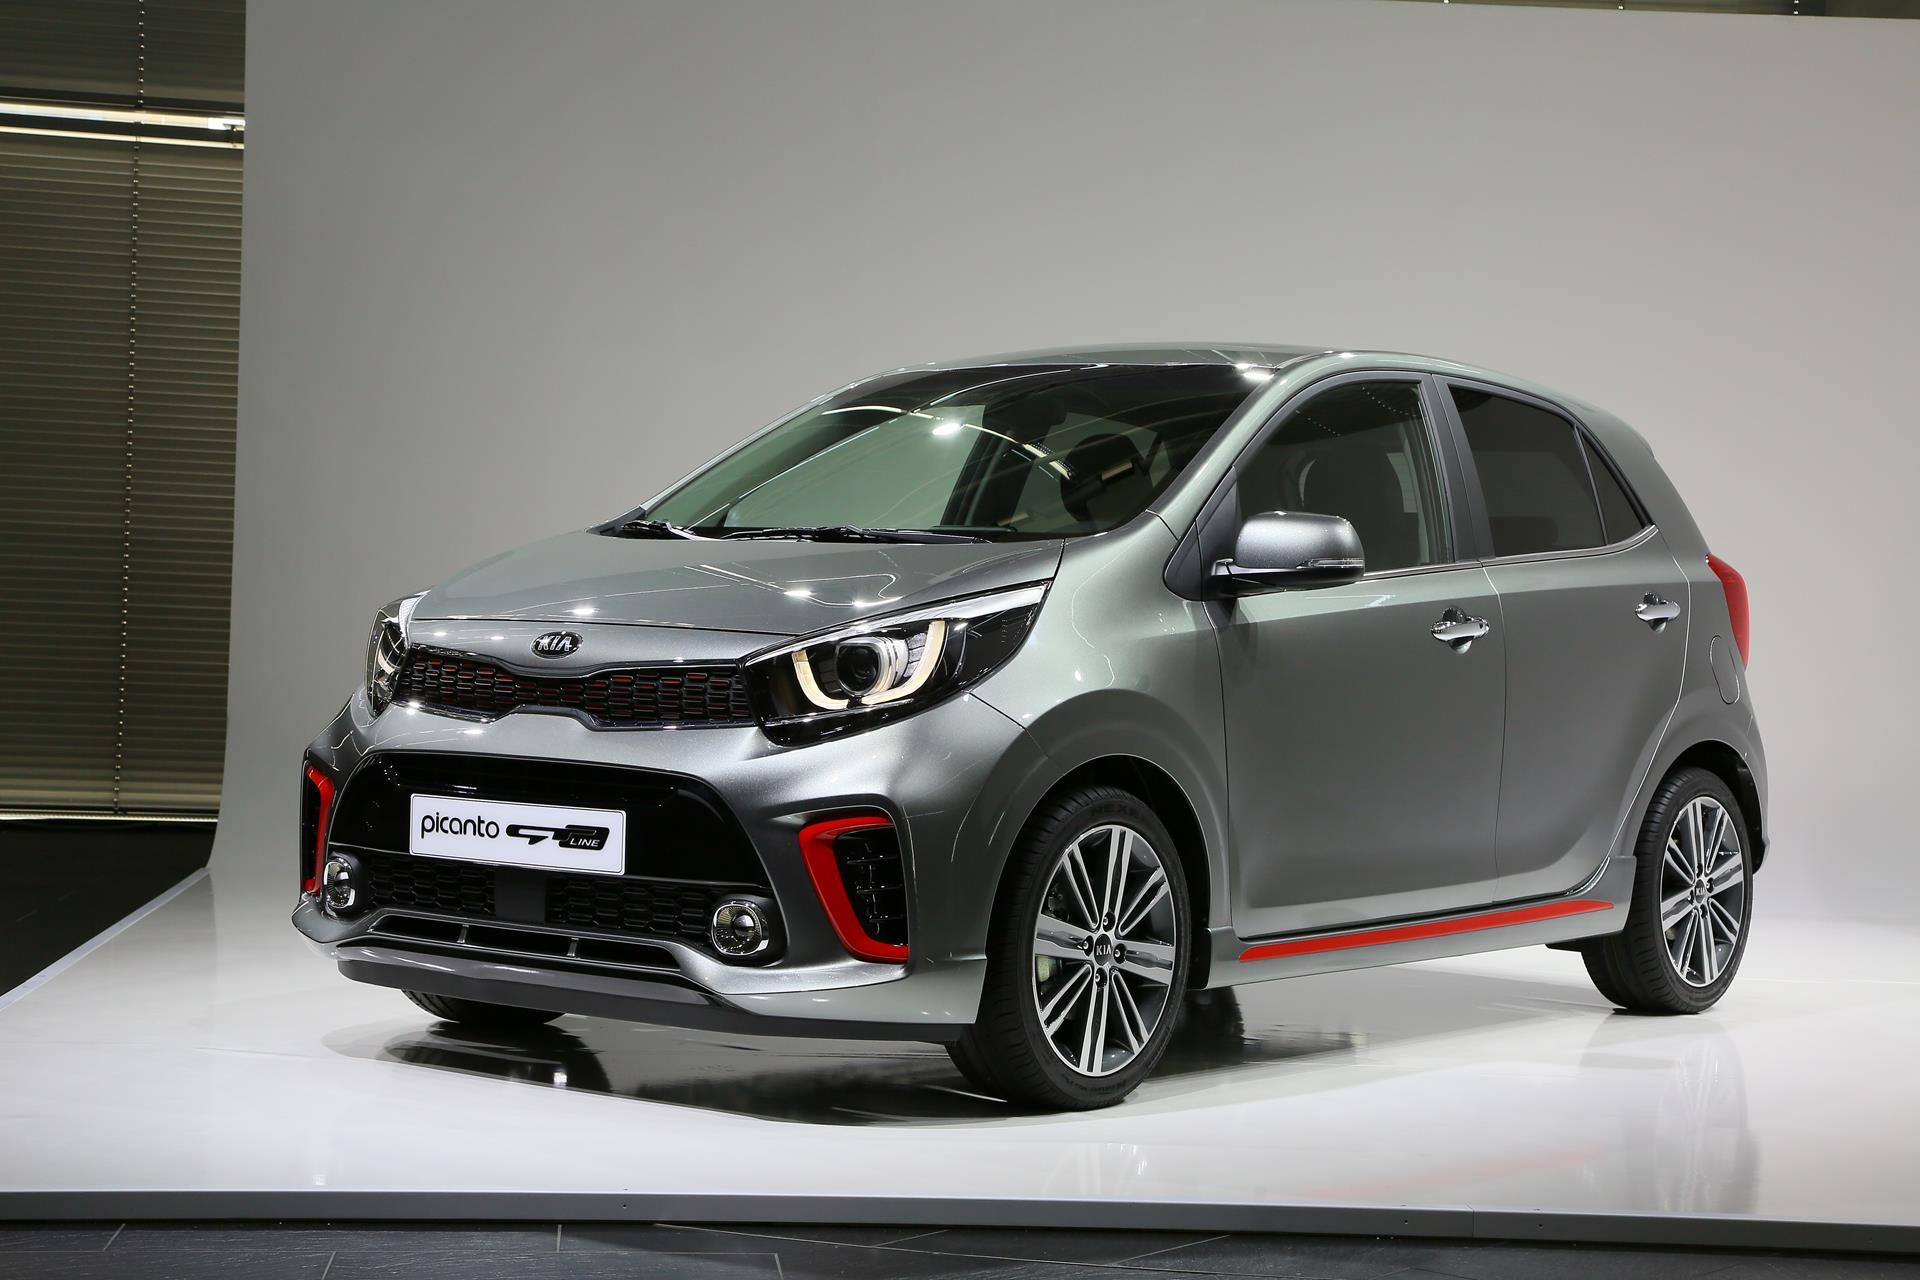 2017 kia picanto gt news and information. Black Bedroom Furniture Sets. Home Design Ideas